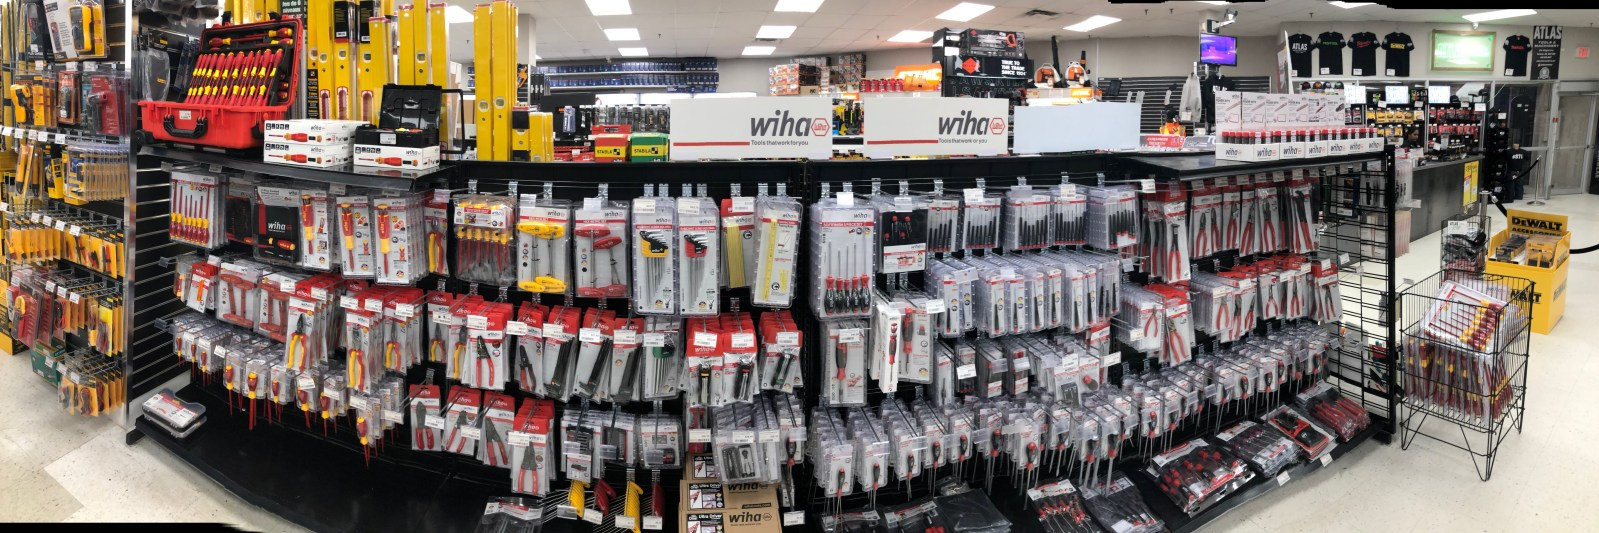 Wiha Tools Display at Atlas Machinery 2019